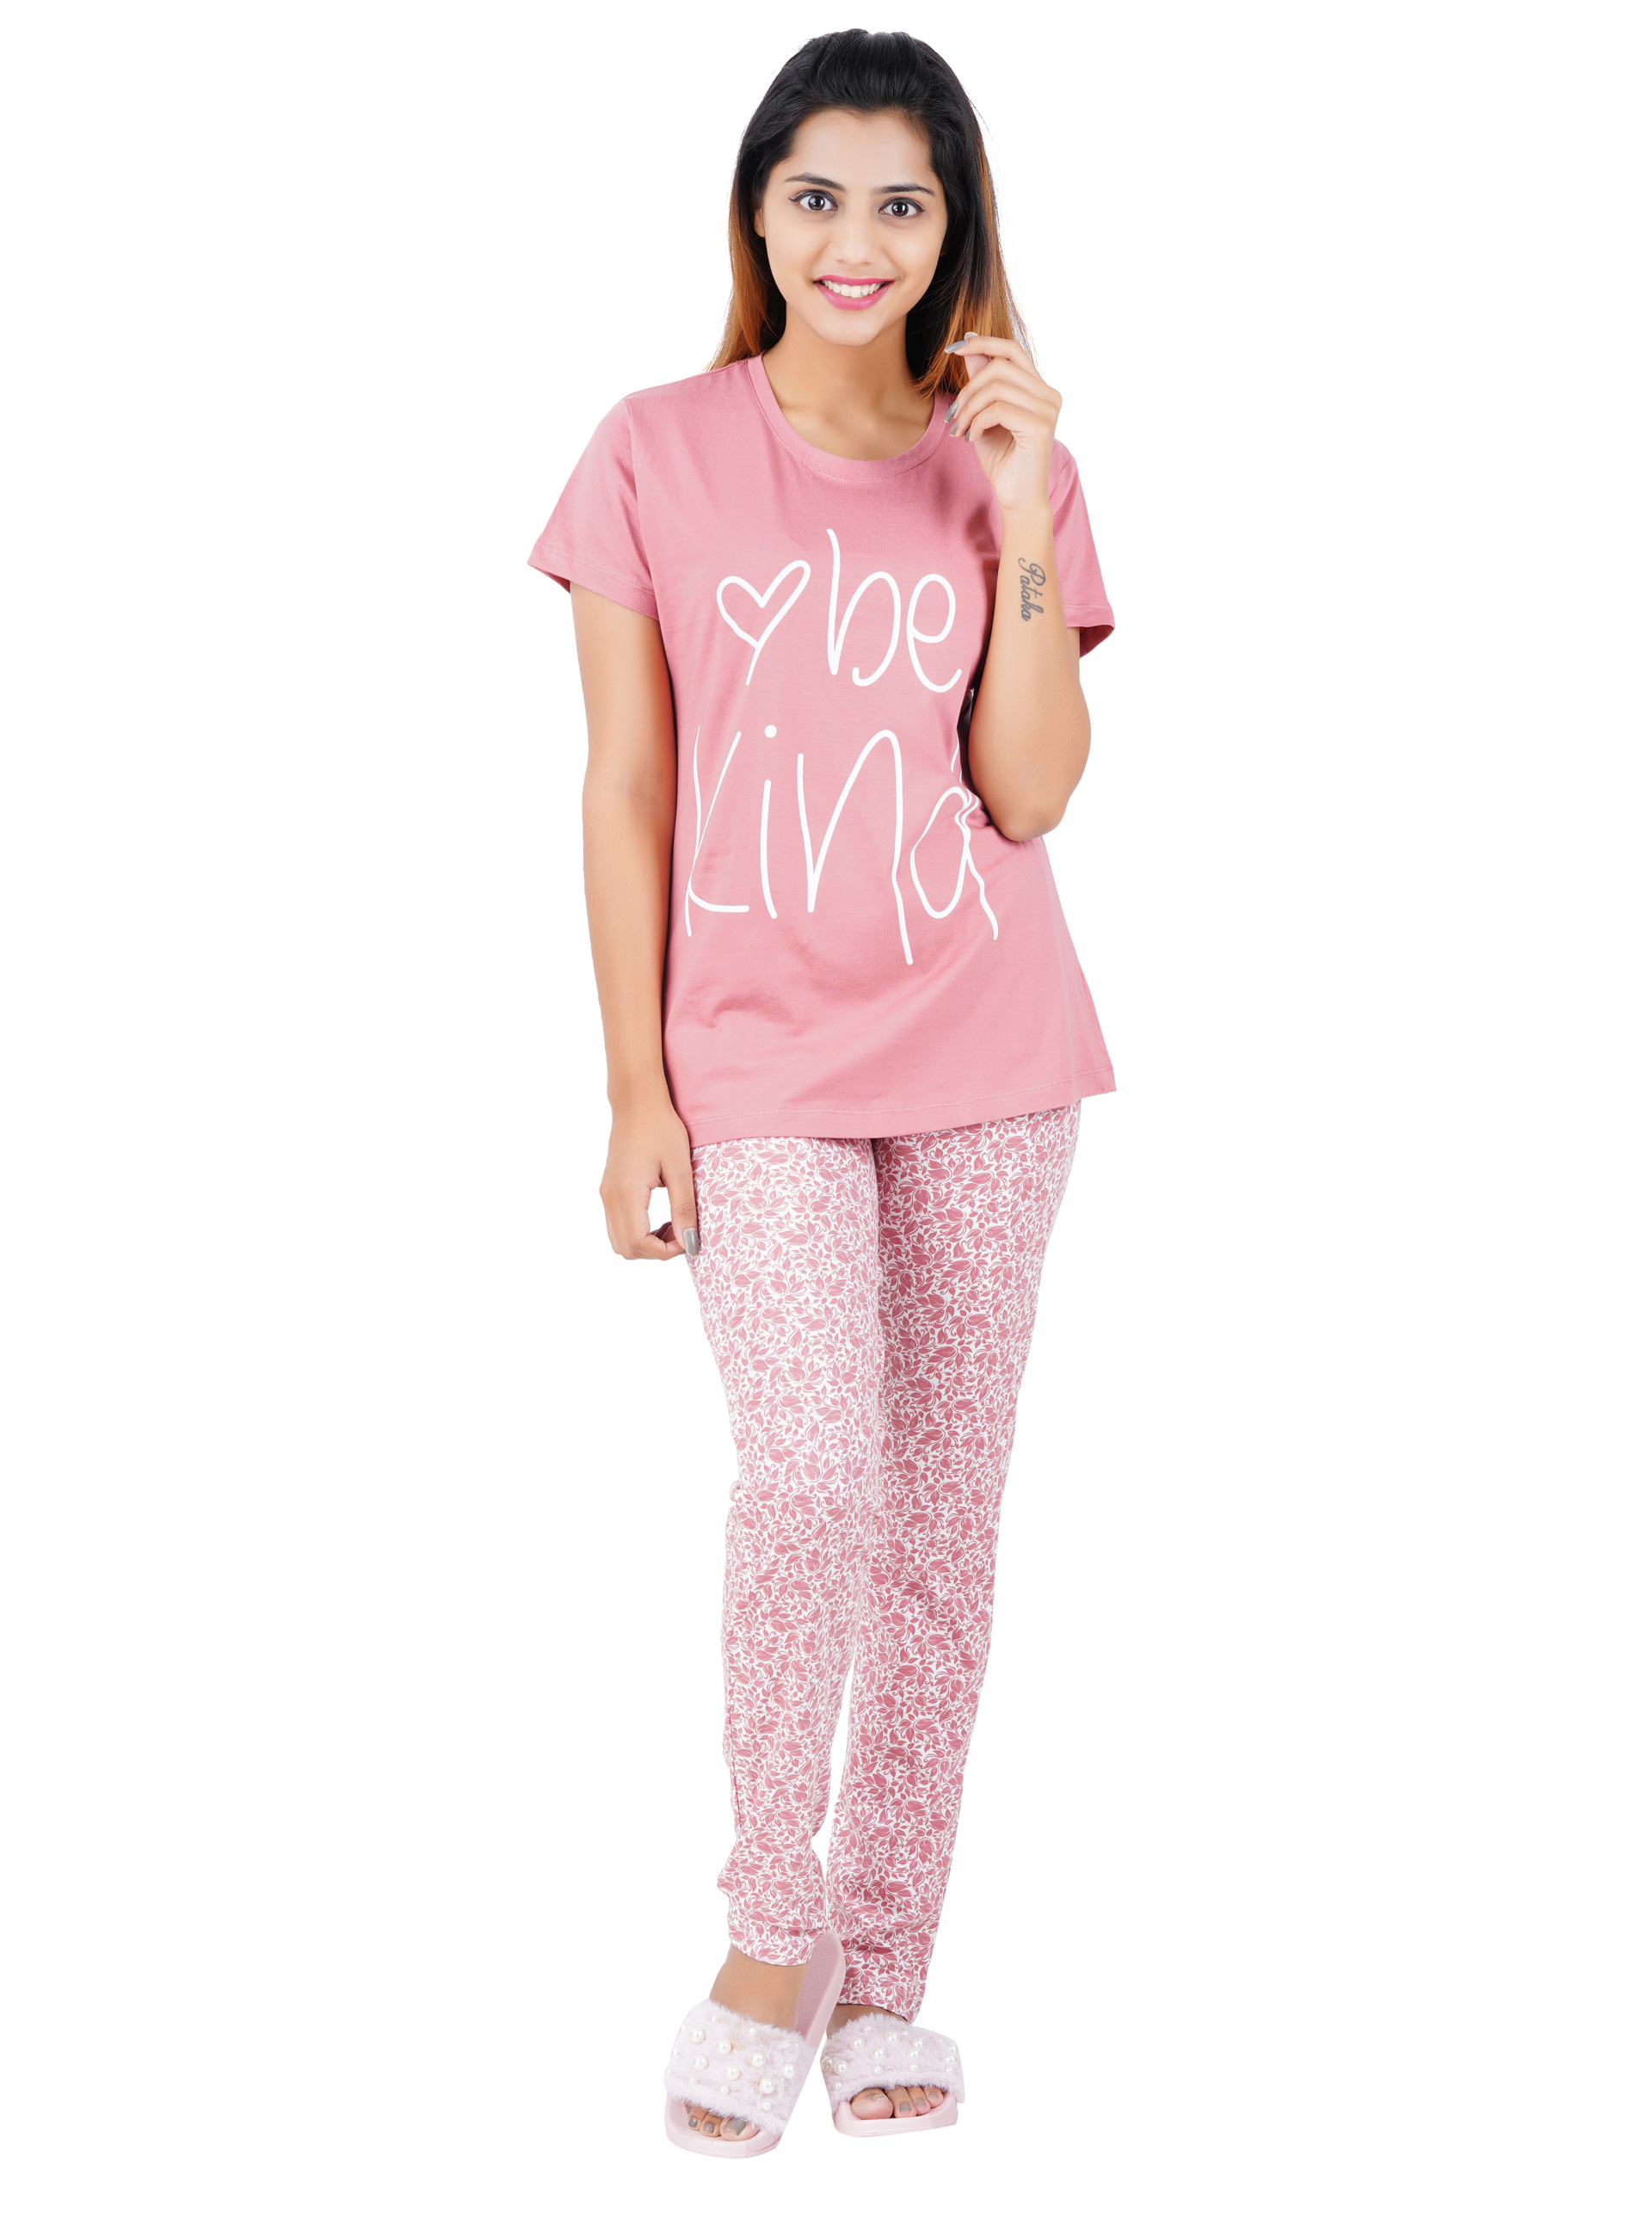 Aswati Pink Full Set Pyjama - Love Be Kind